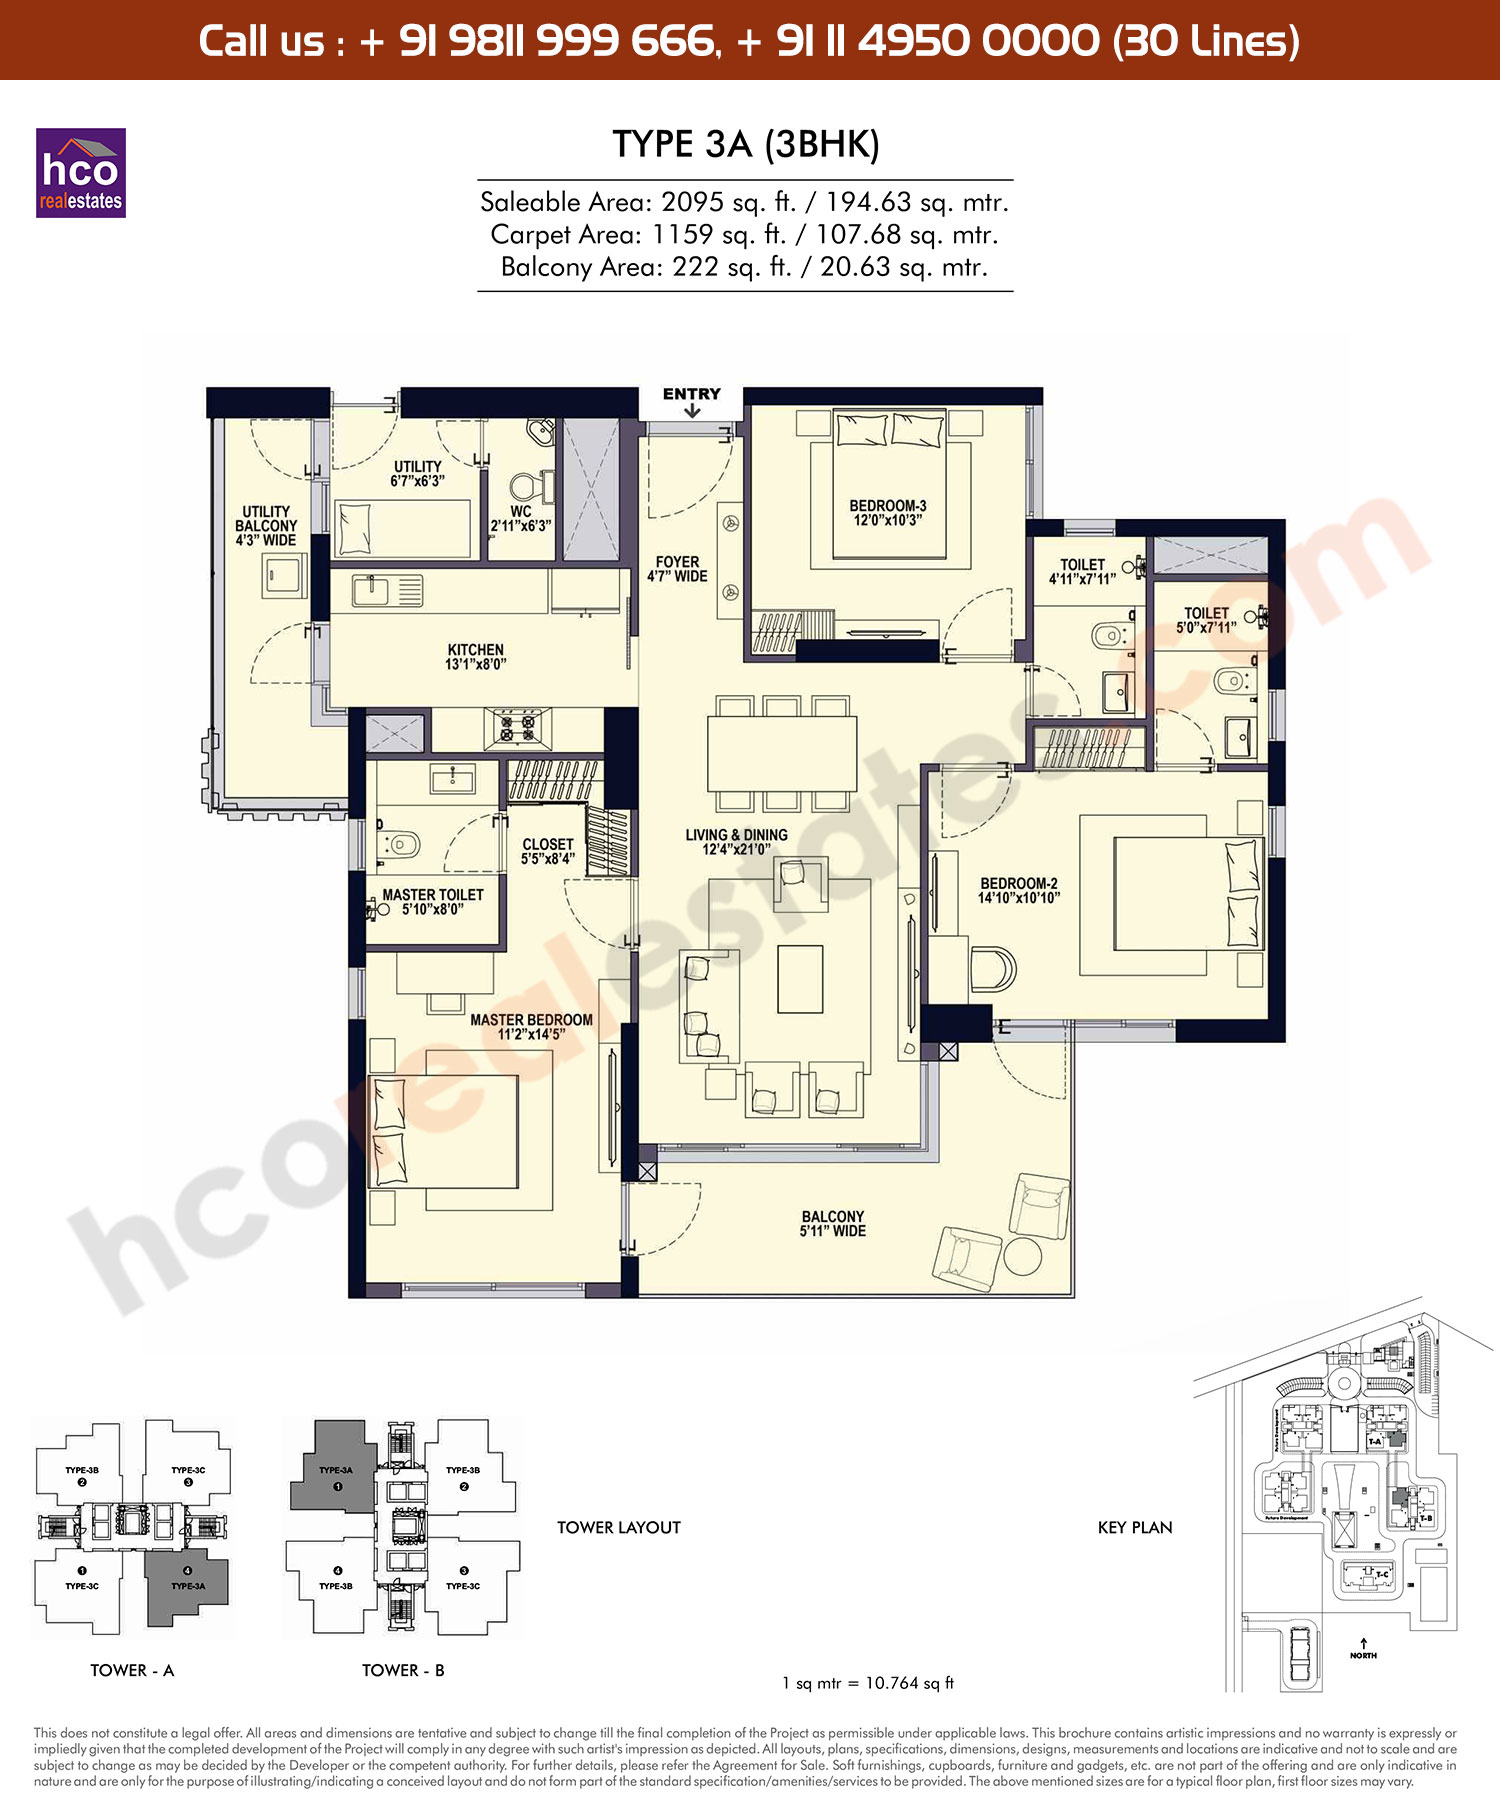 3 BHK, Type - 3A: 2095 Sq. Ft.